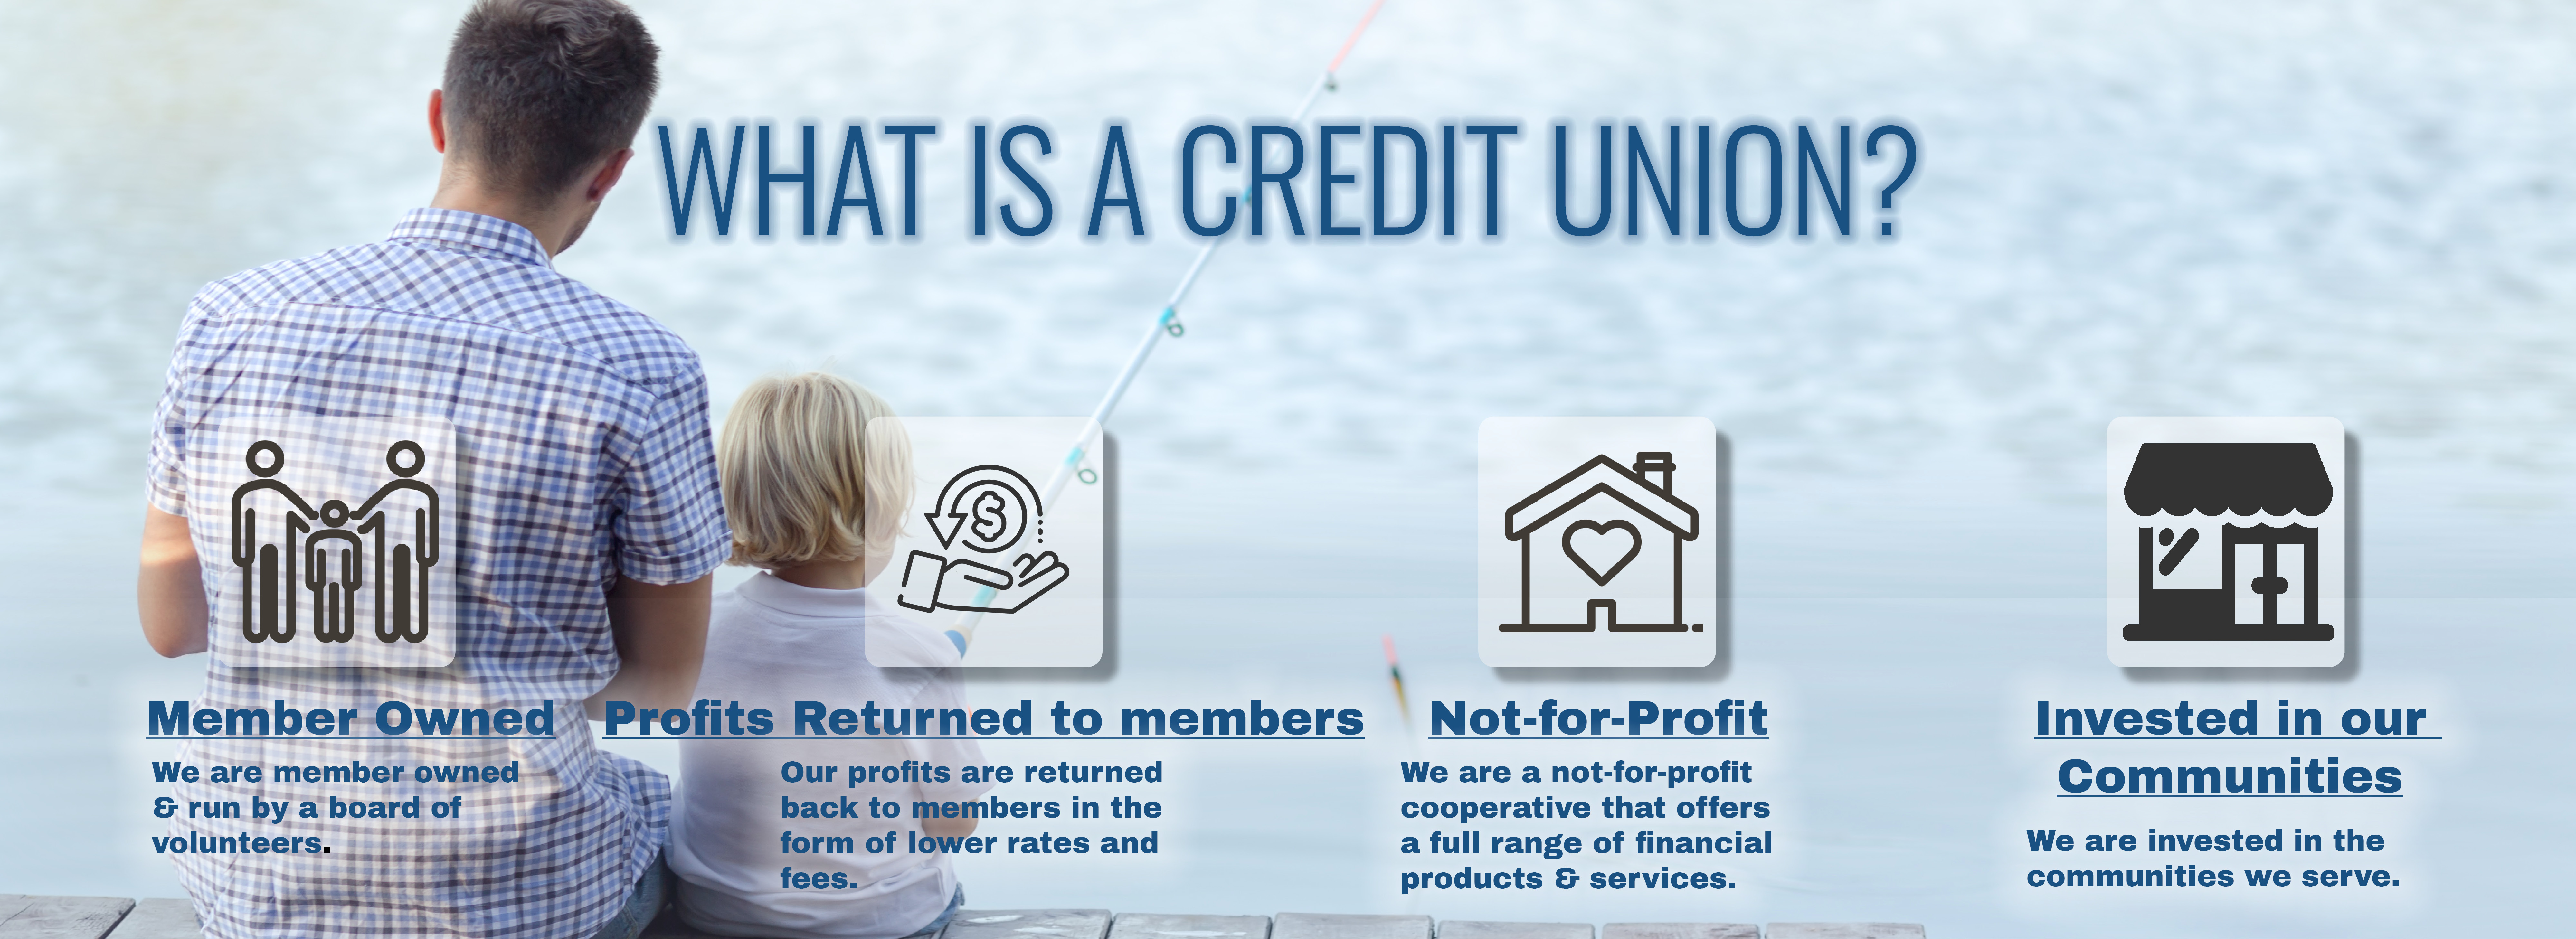 whats a credit union image